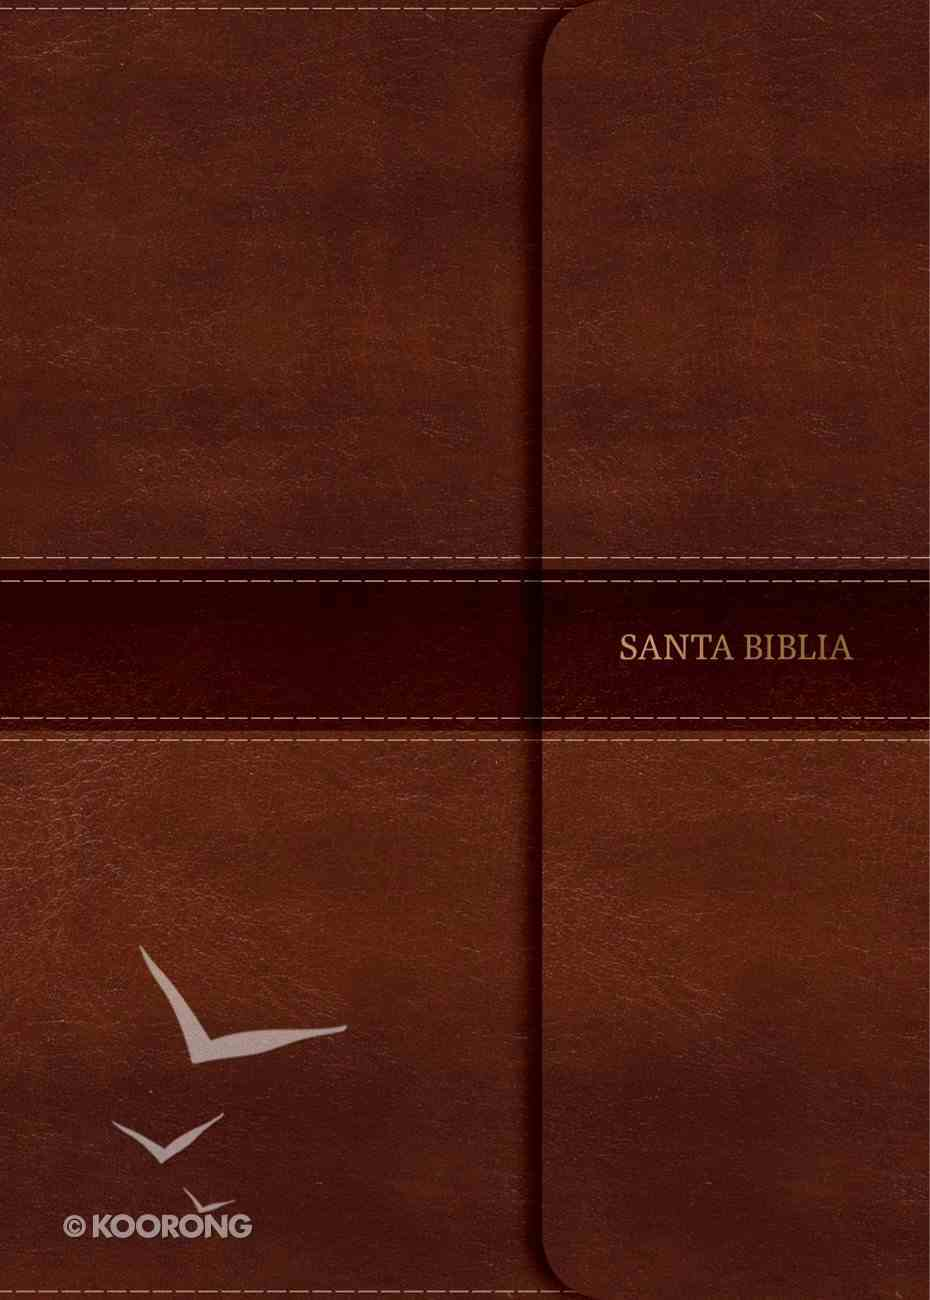 Rvr 1960 Biblia Letra Grande Tamano Manual Marron Indice Y Solapa Con Iman (Red Letter Edition) (Giant Print Magnetic Flap) Imitation Leather